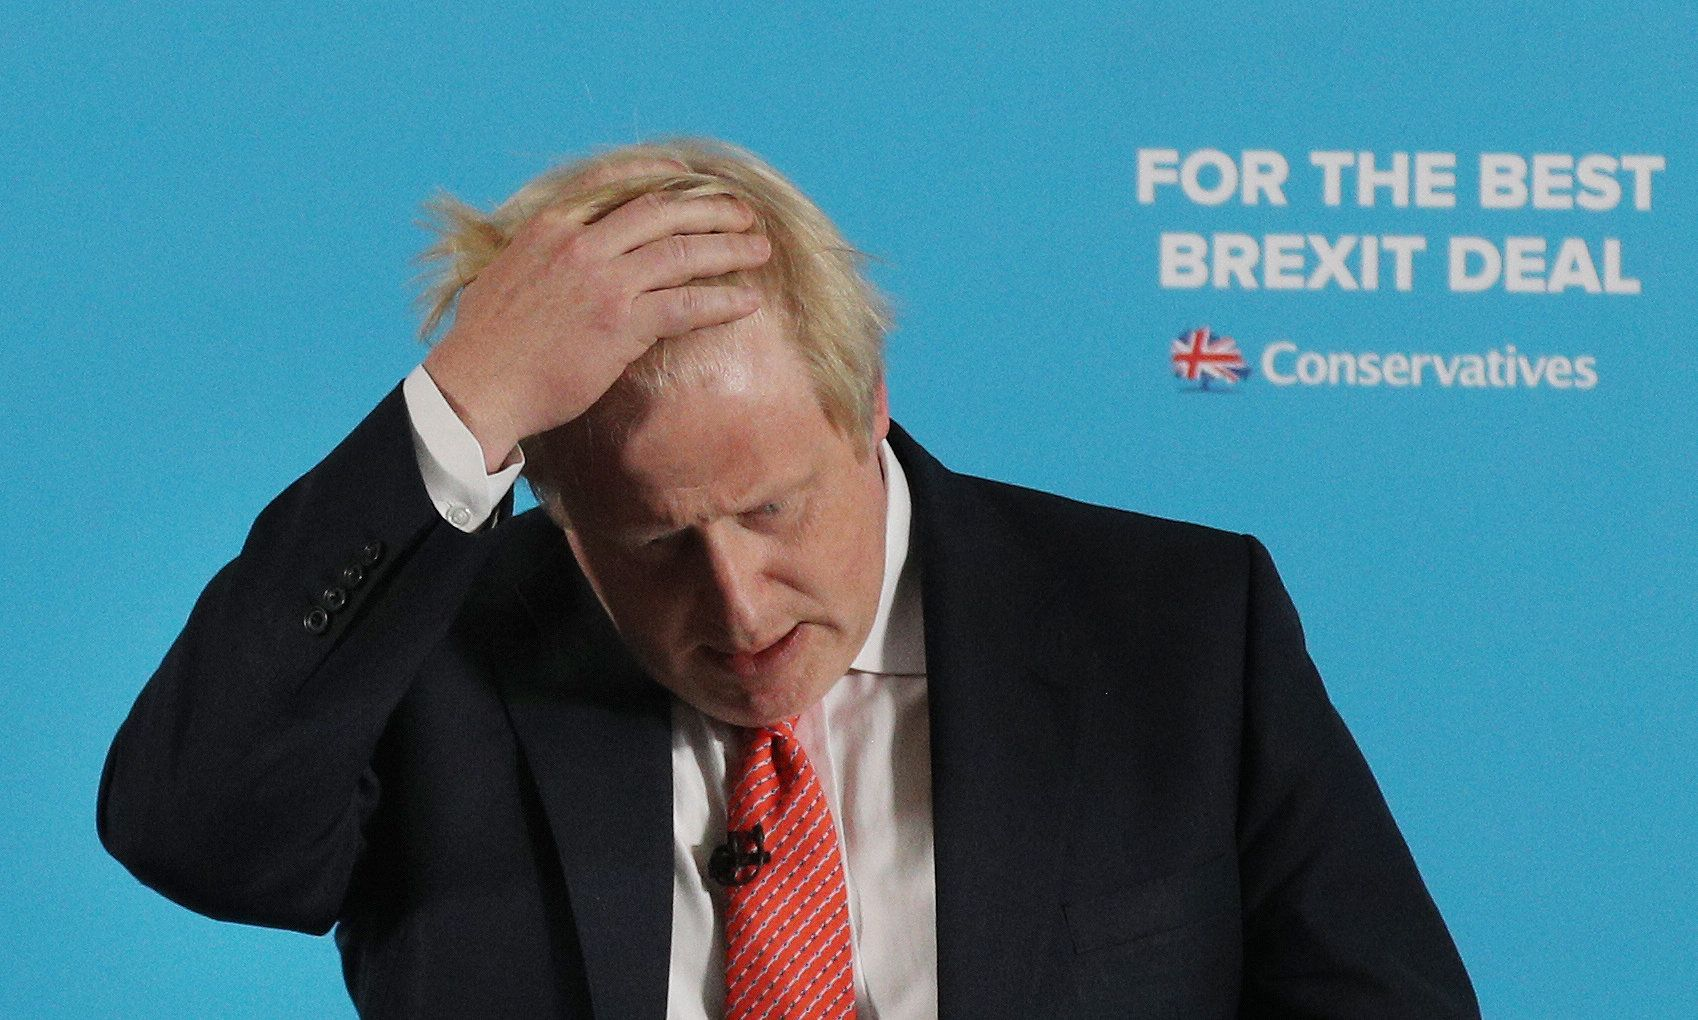 After quitting, Boris Johnson says Brexit 'dream is dying'